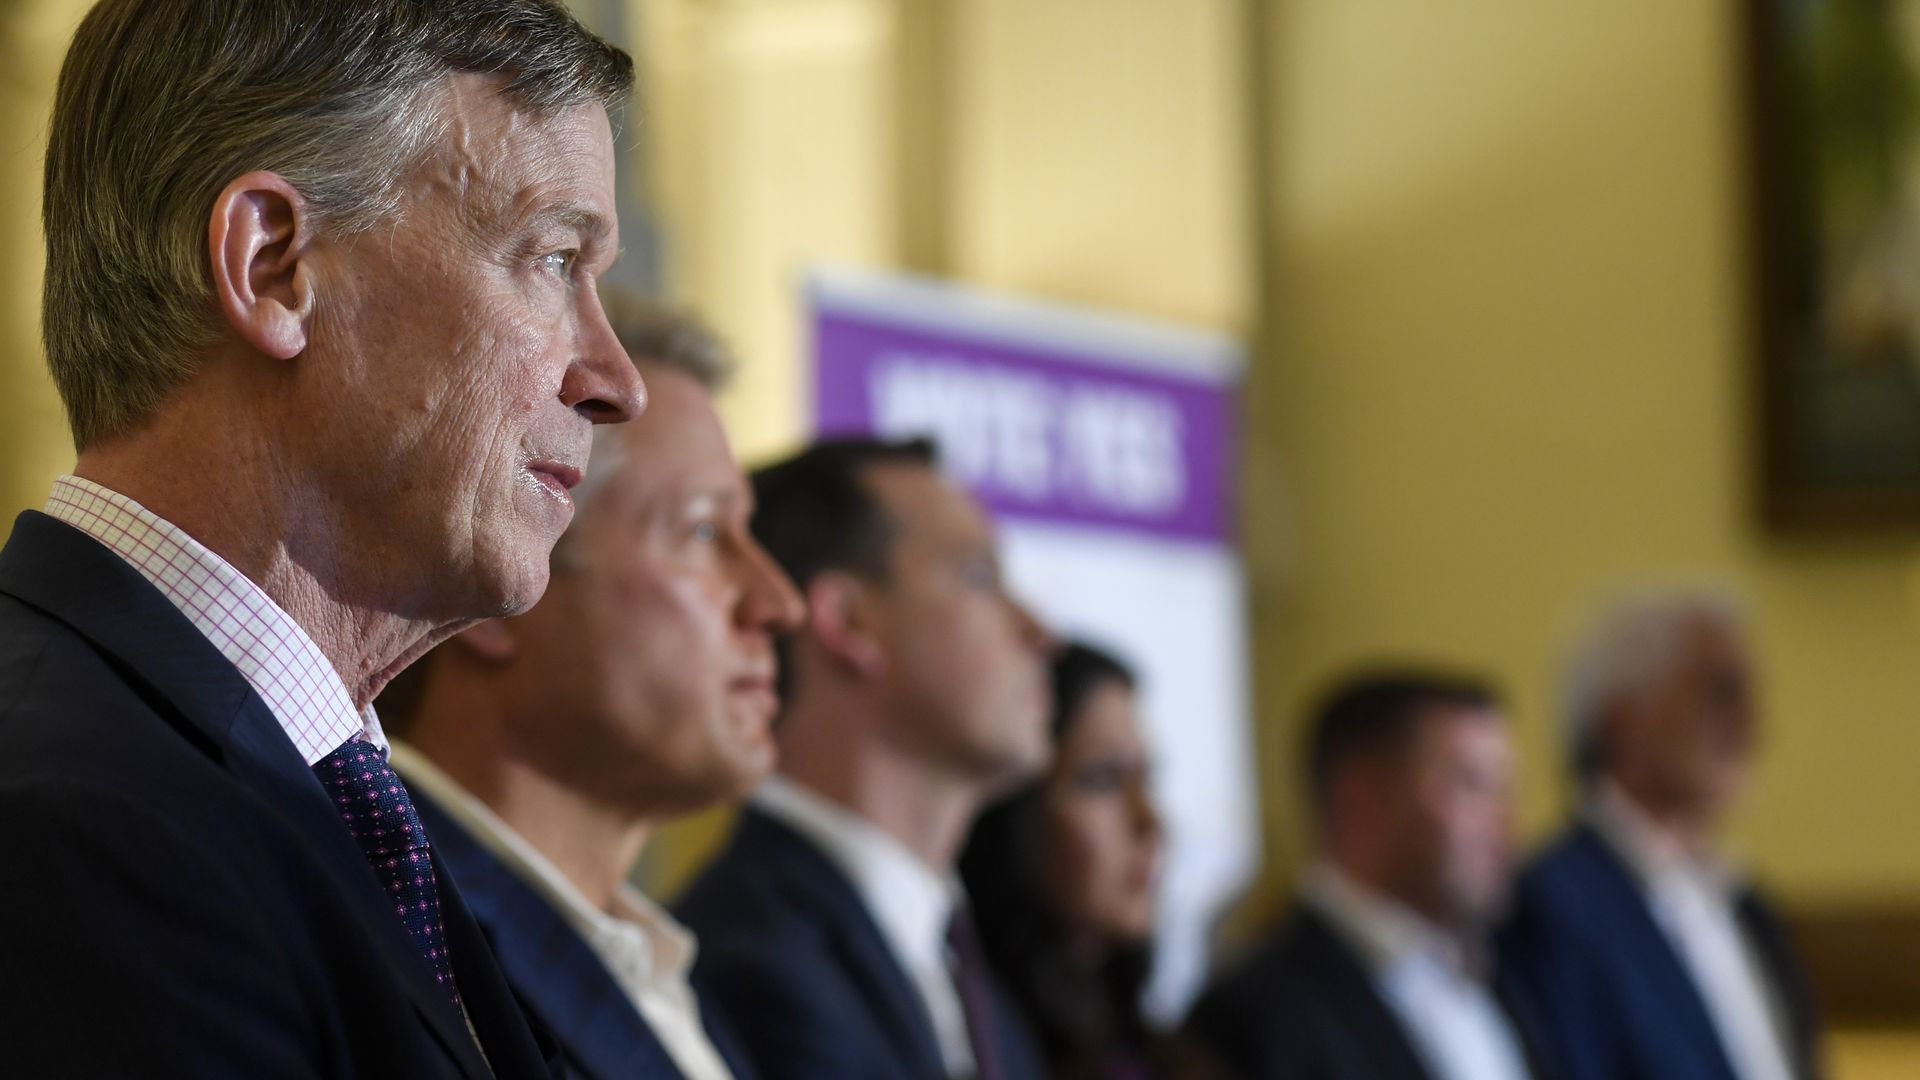 Kent Thiry, second from left, stands with former Gov. John Hickenlooper, far left, and state lawmakers. Photo: AAron Ontiveroz/The Denver Post via Getty Images